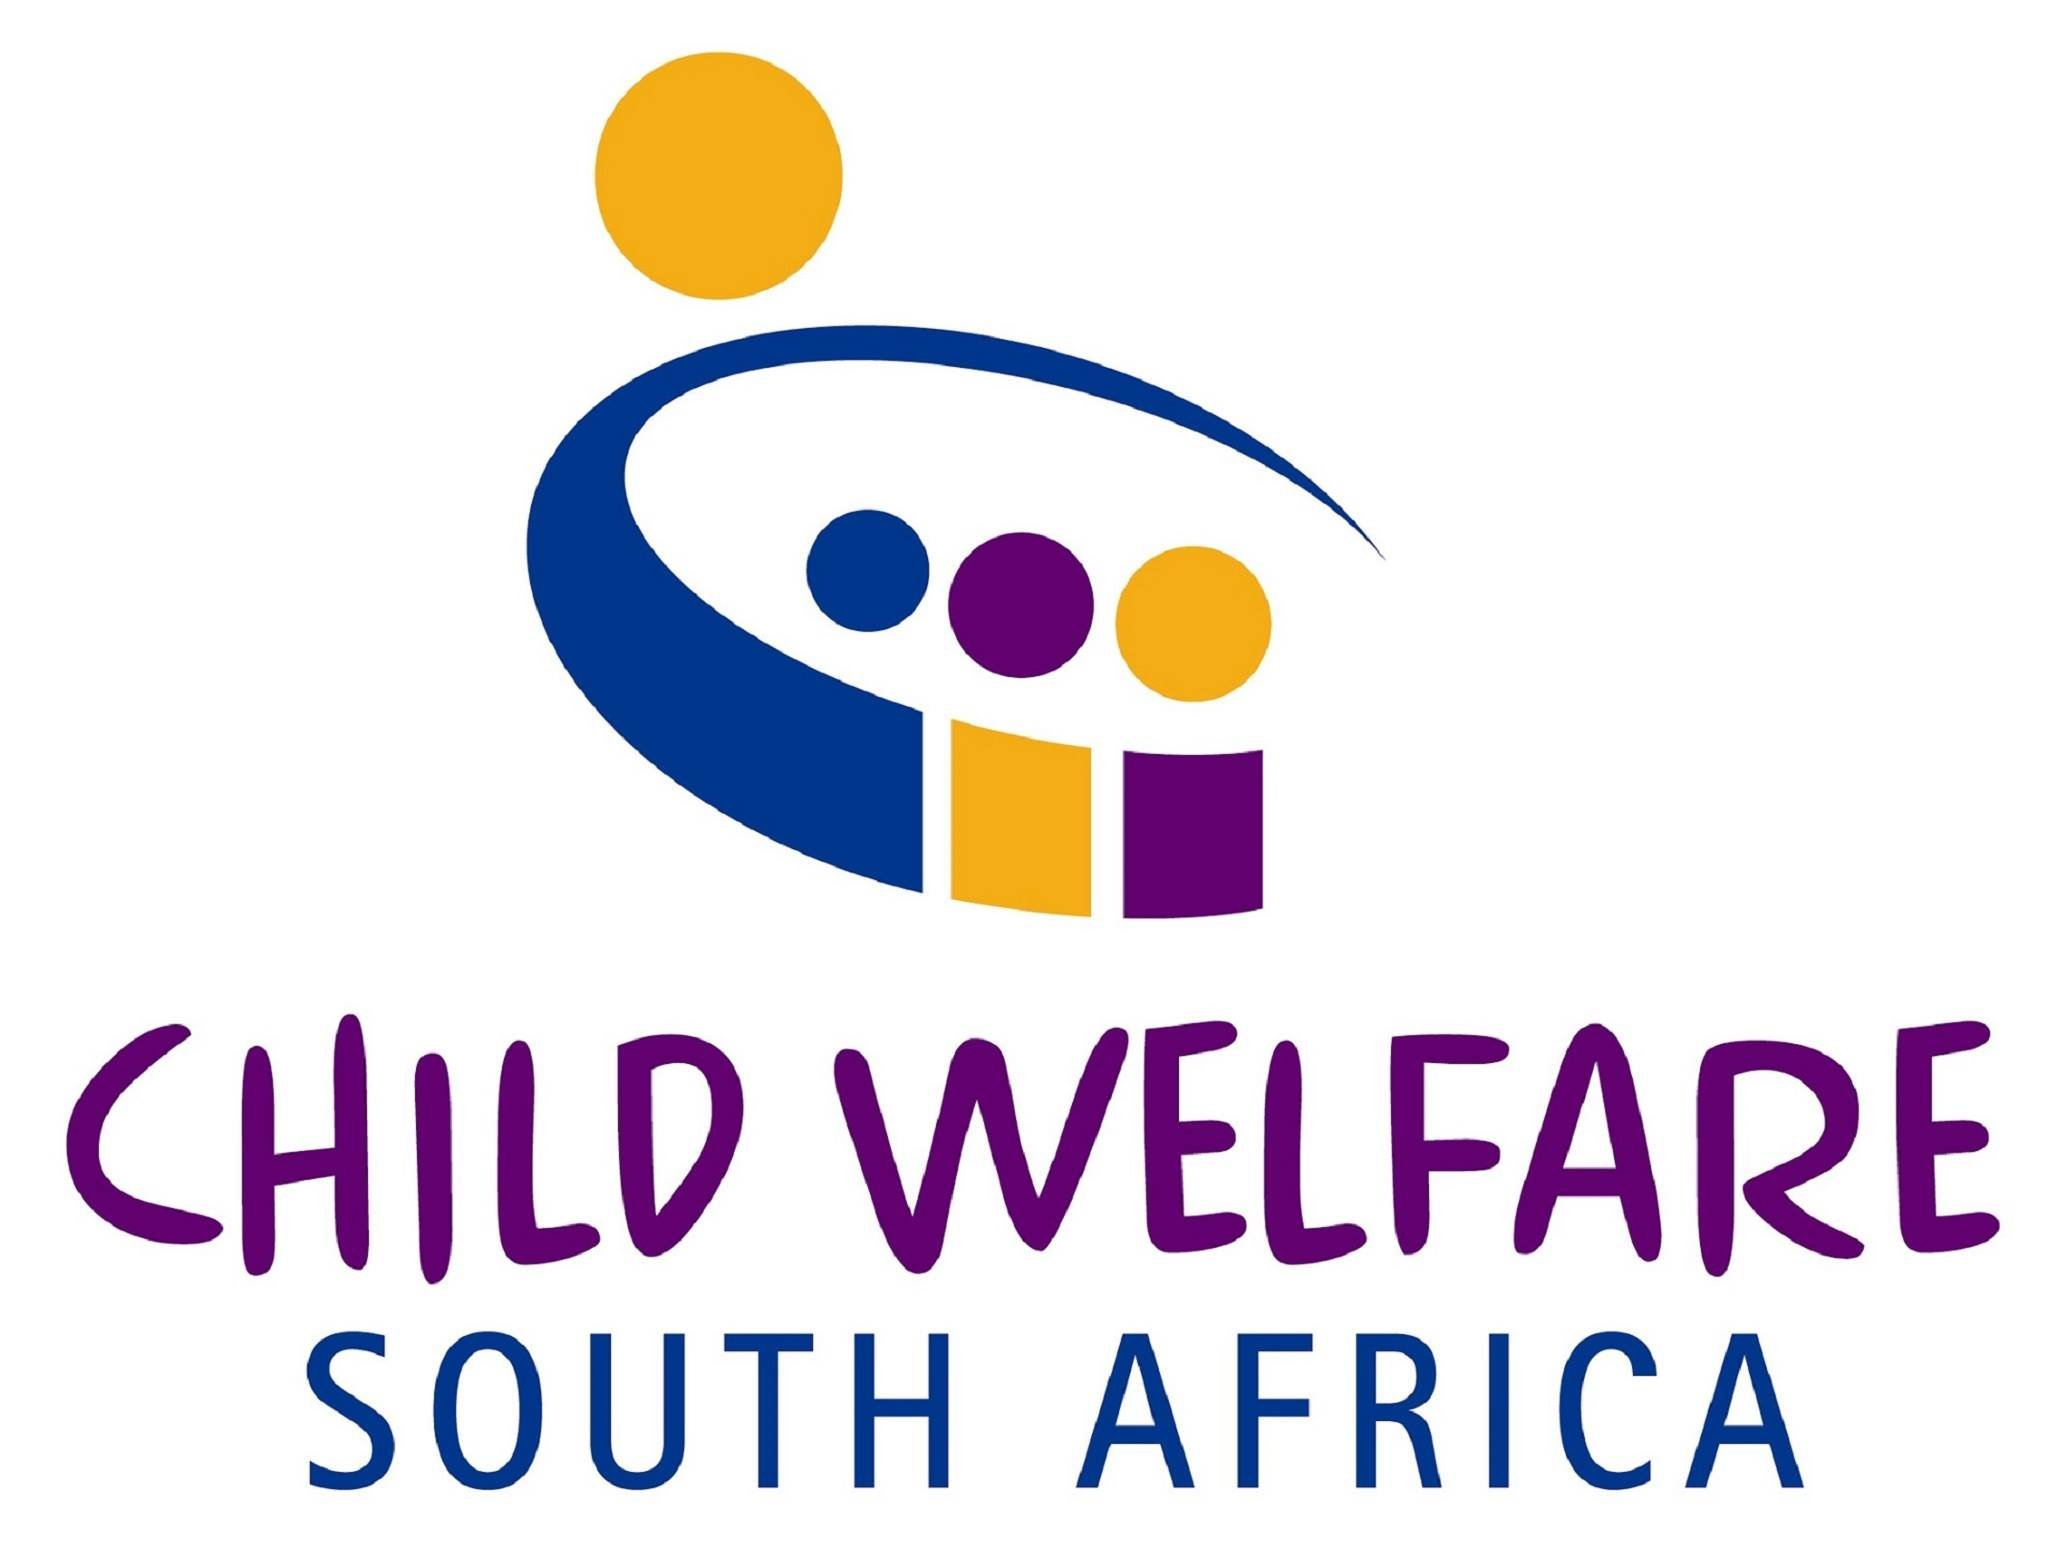 CAFB supports the Helderberg Child Welfare branch.